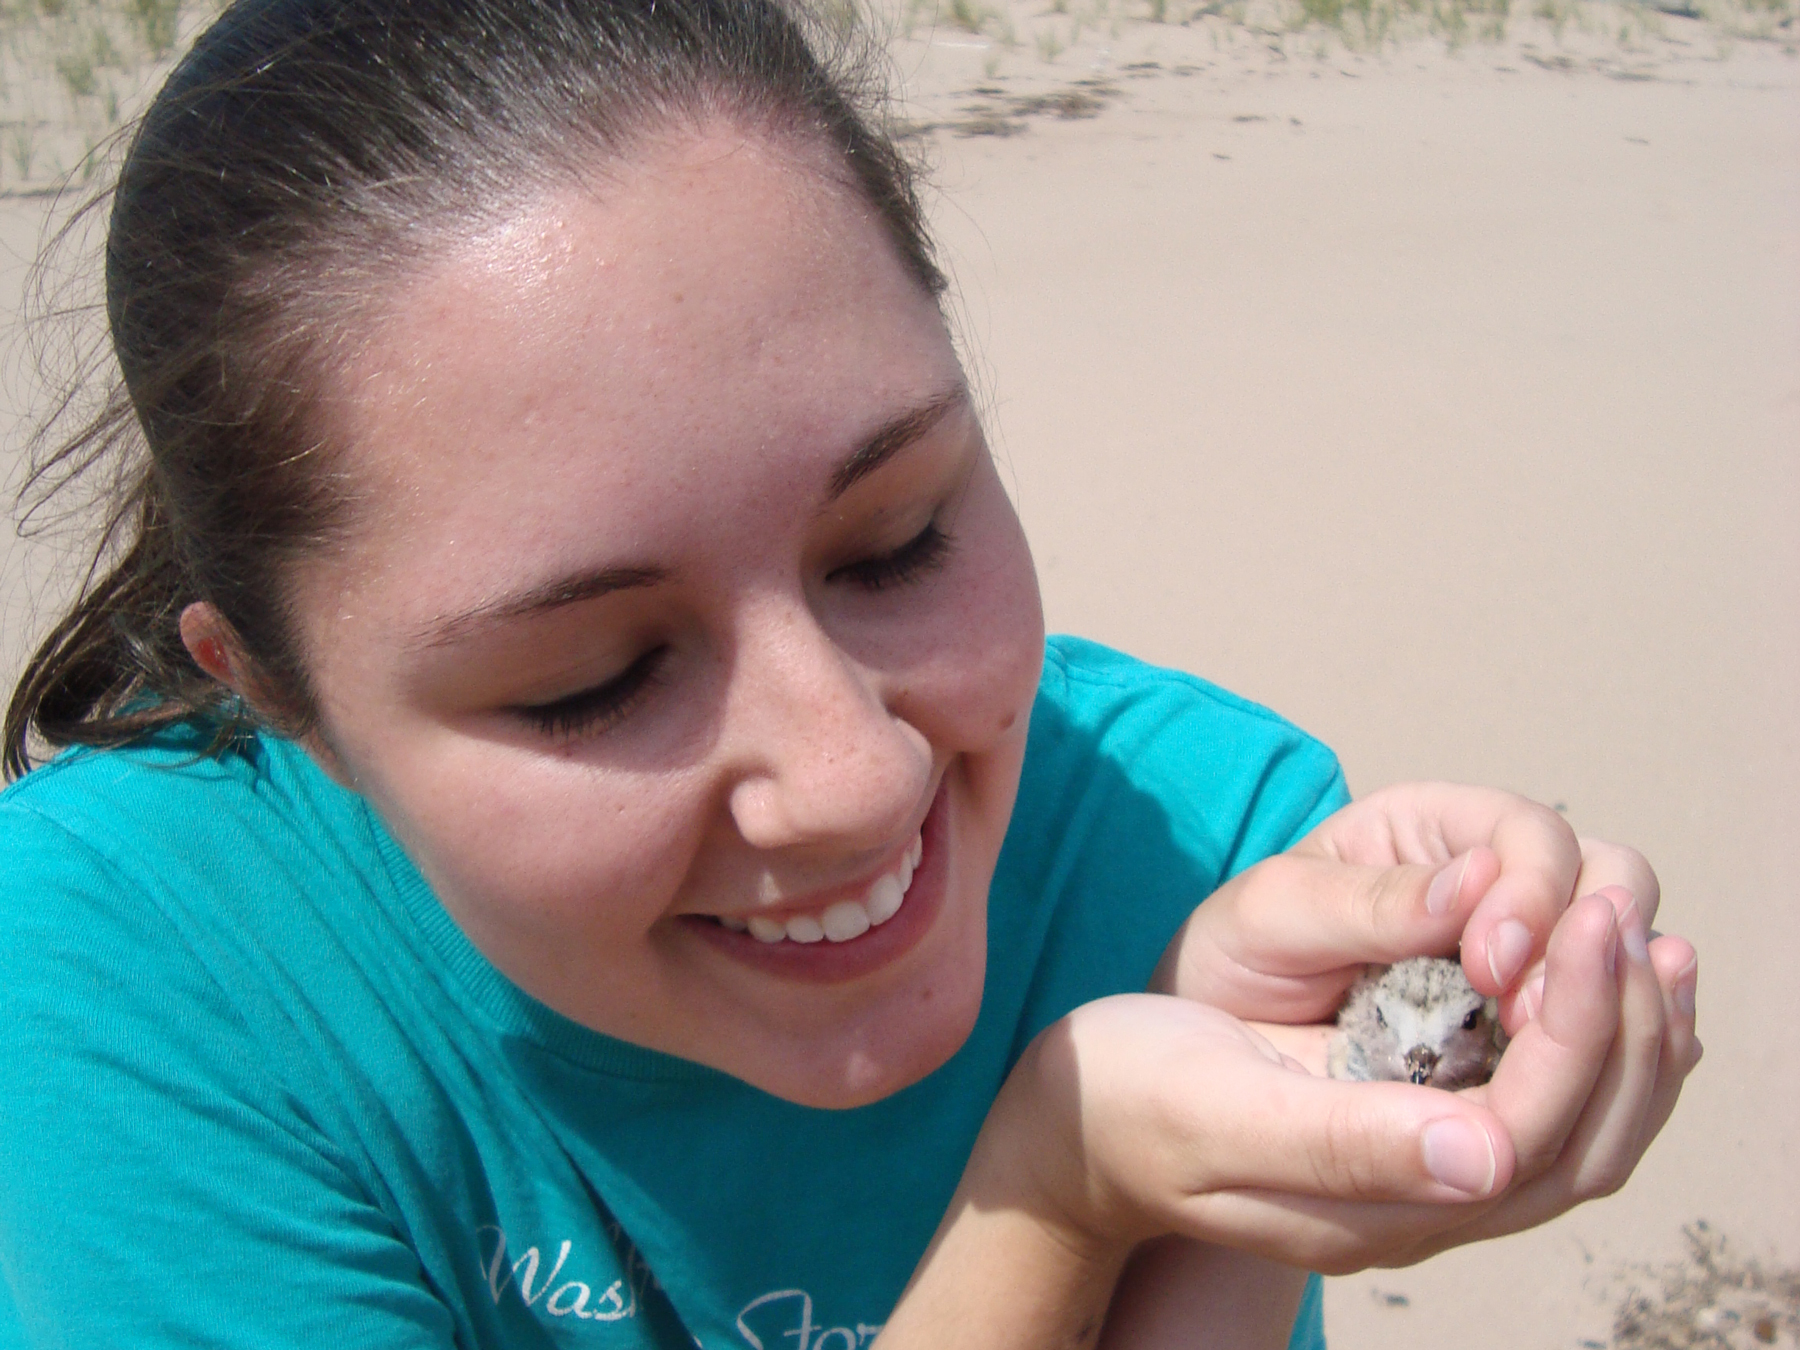 Jennie cradles a Piping Plover chick